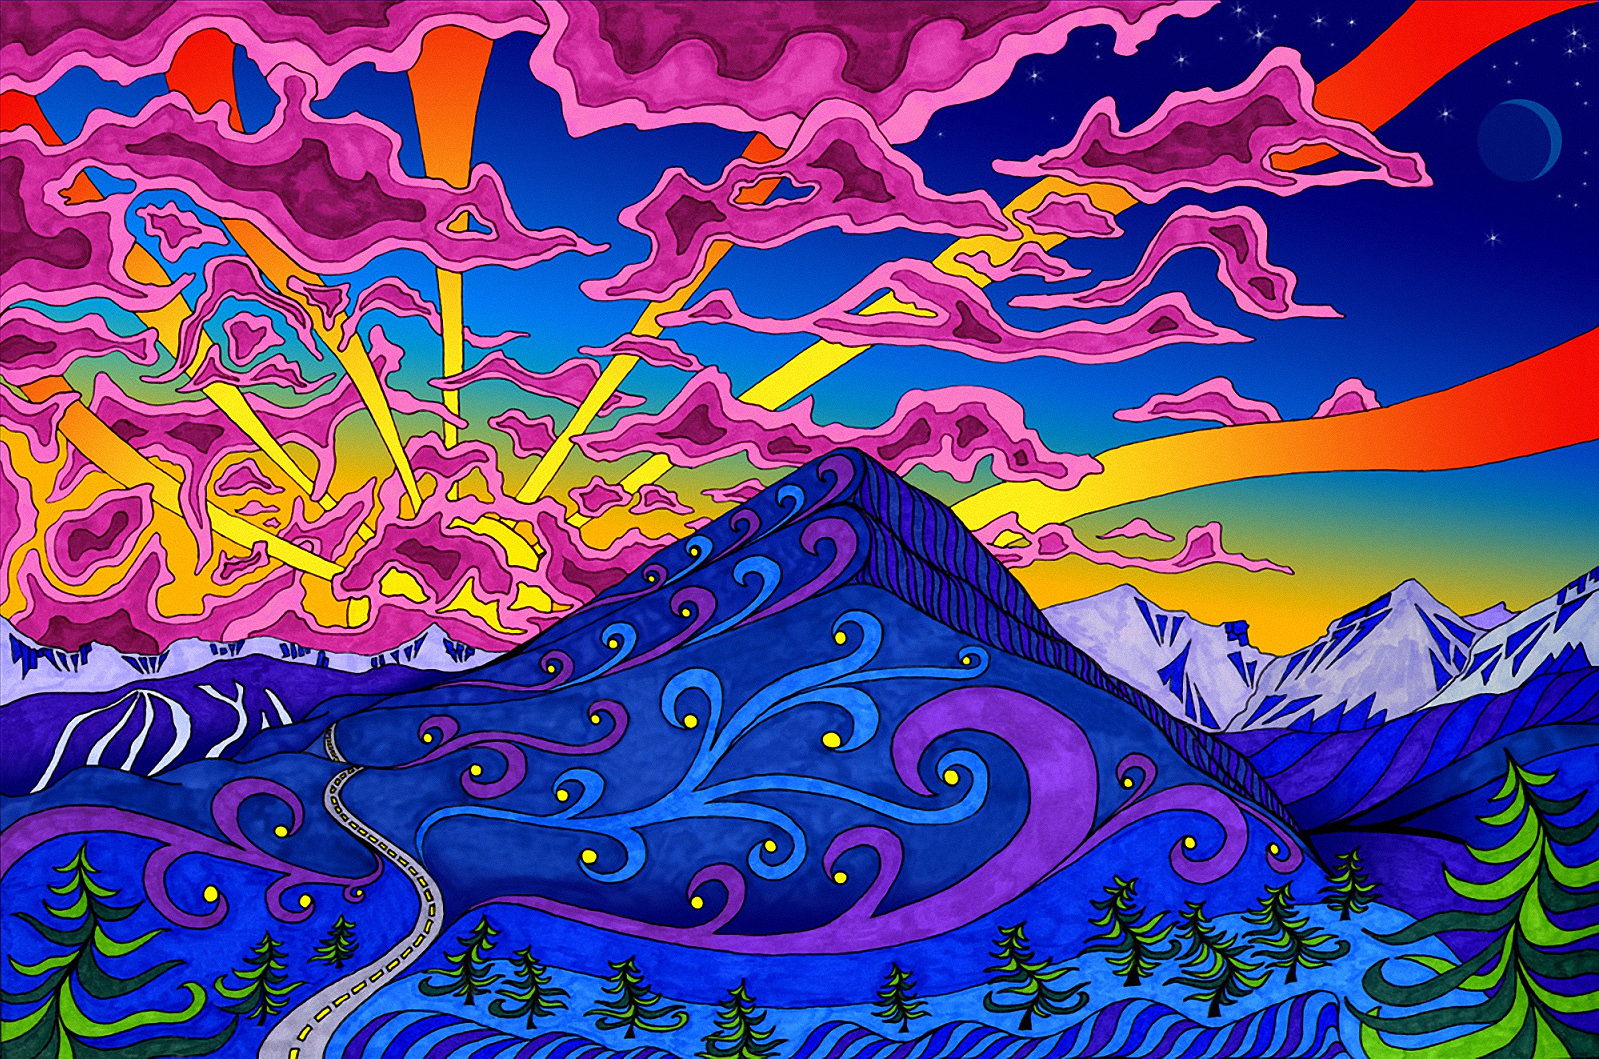 Psychedelic Wallpaper Wallpapers HD Quality 1599x1059